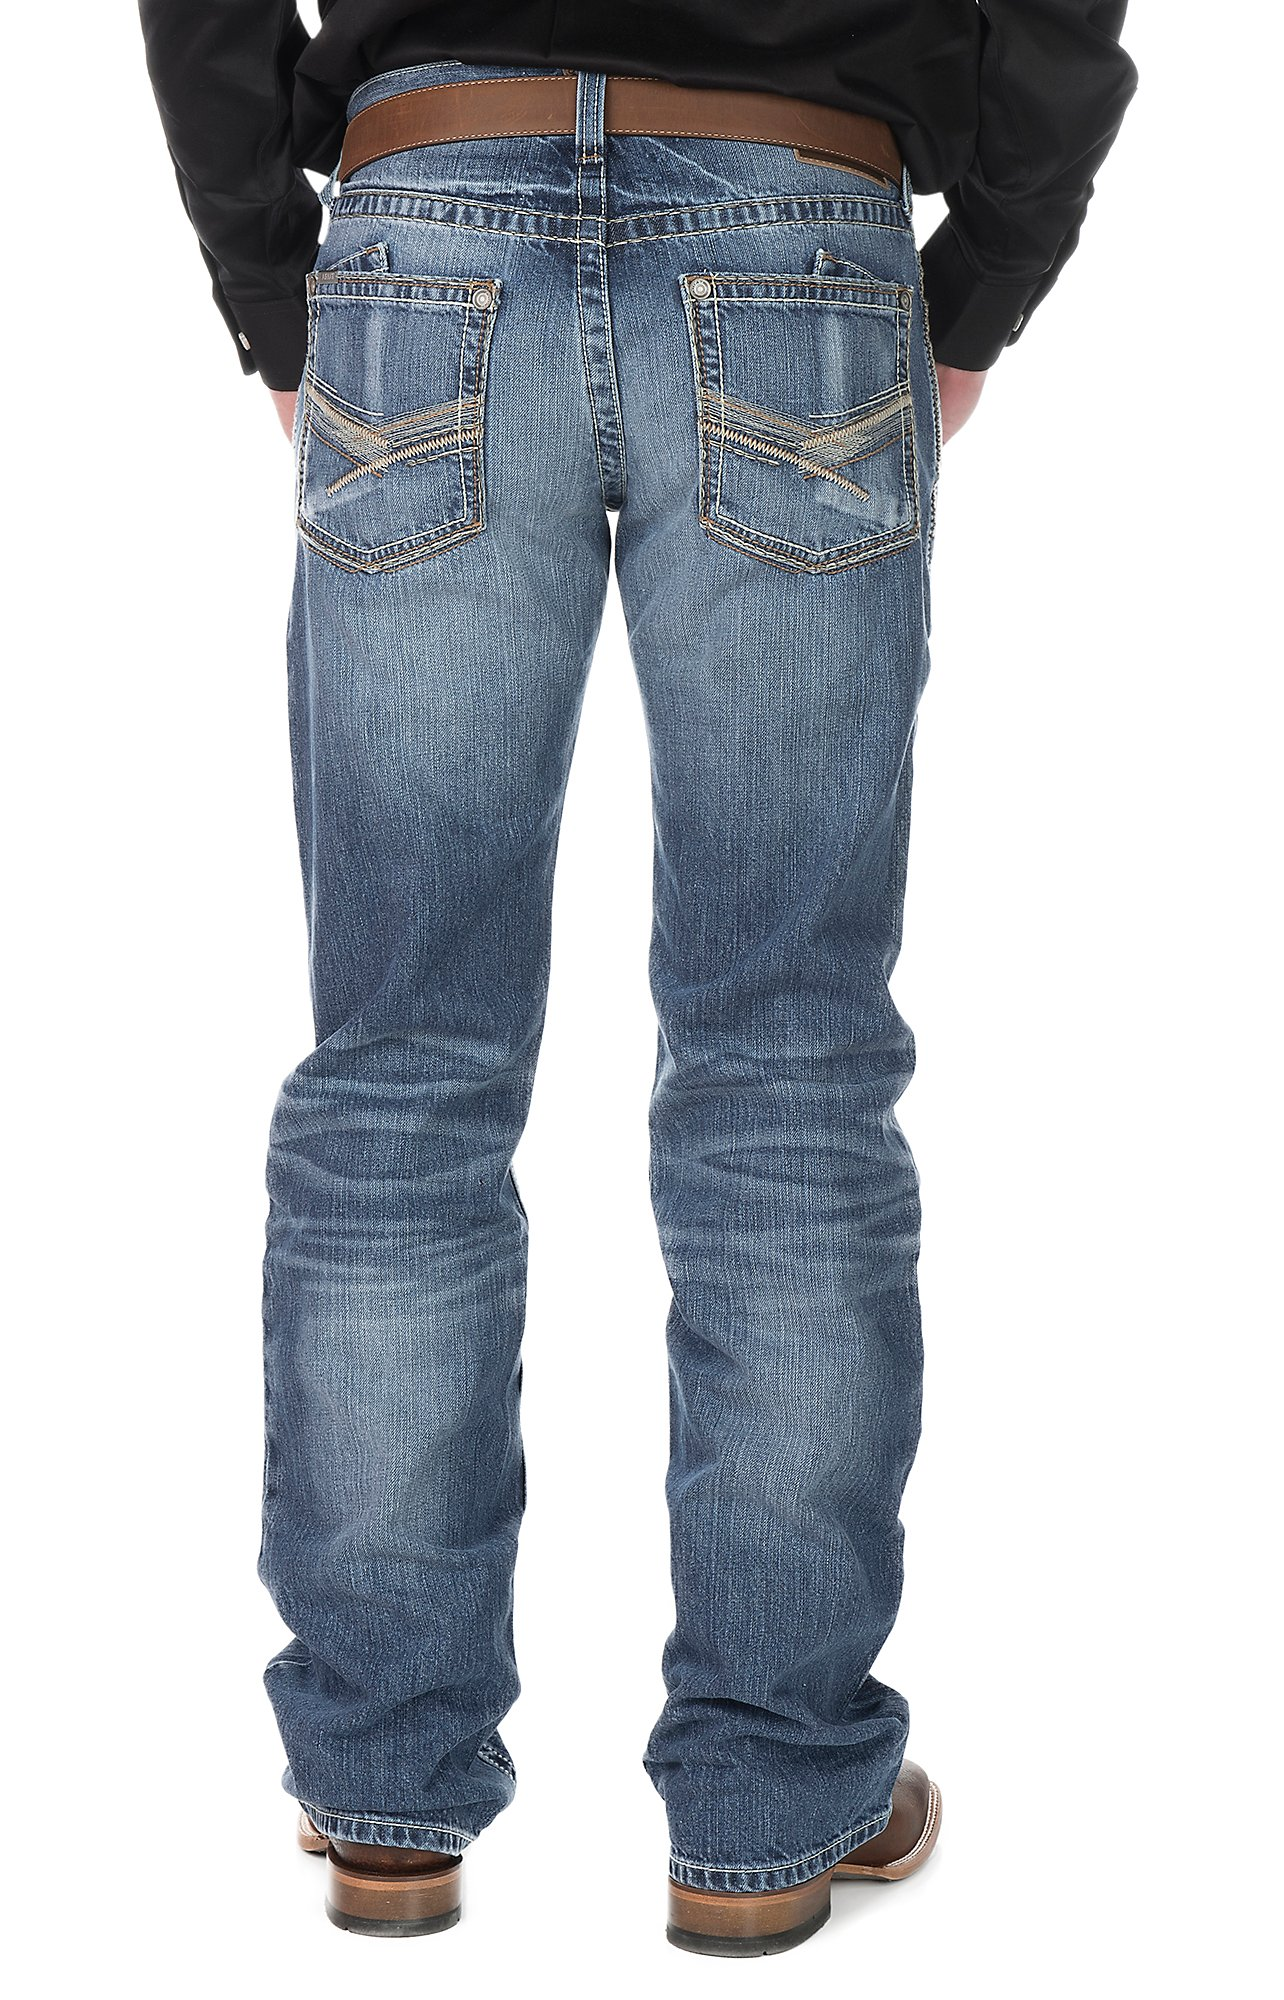 Shop Ariat Jeans | Free Shipping $50  | Cavender's